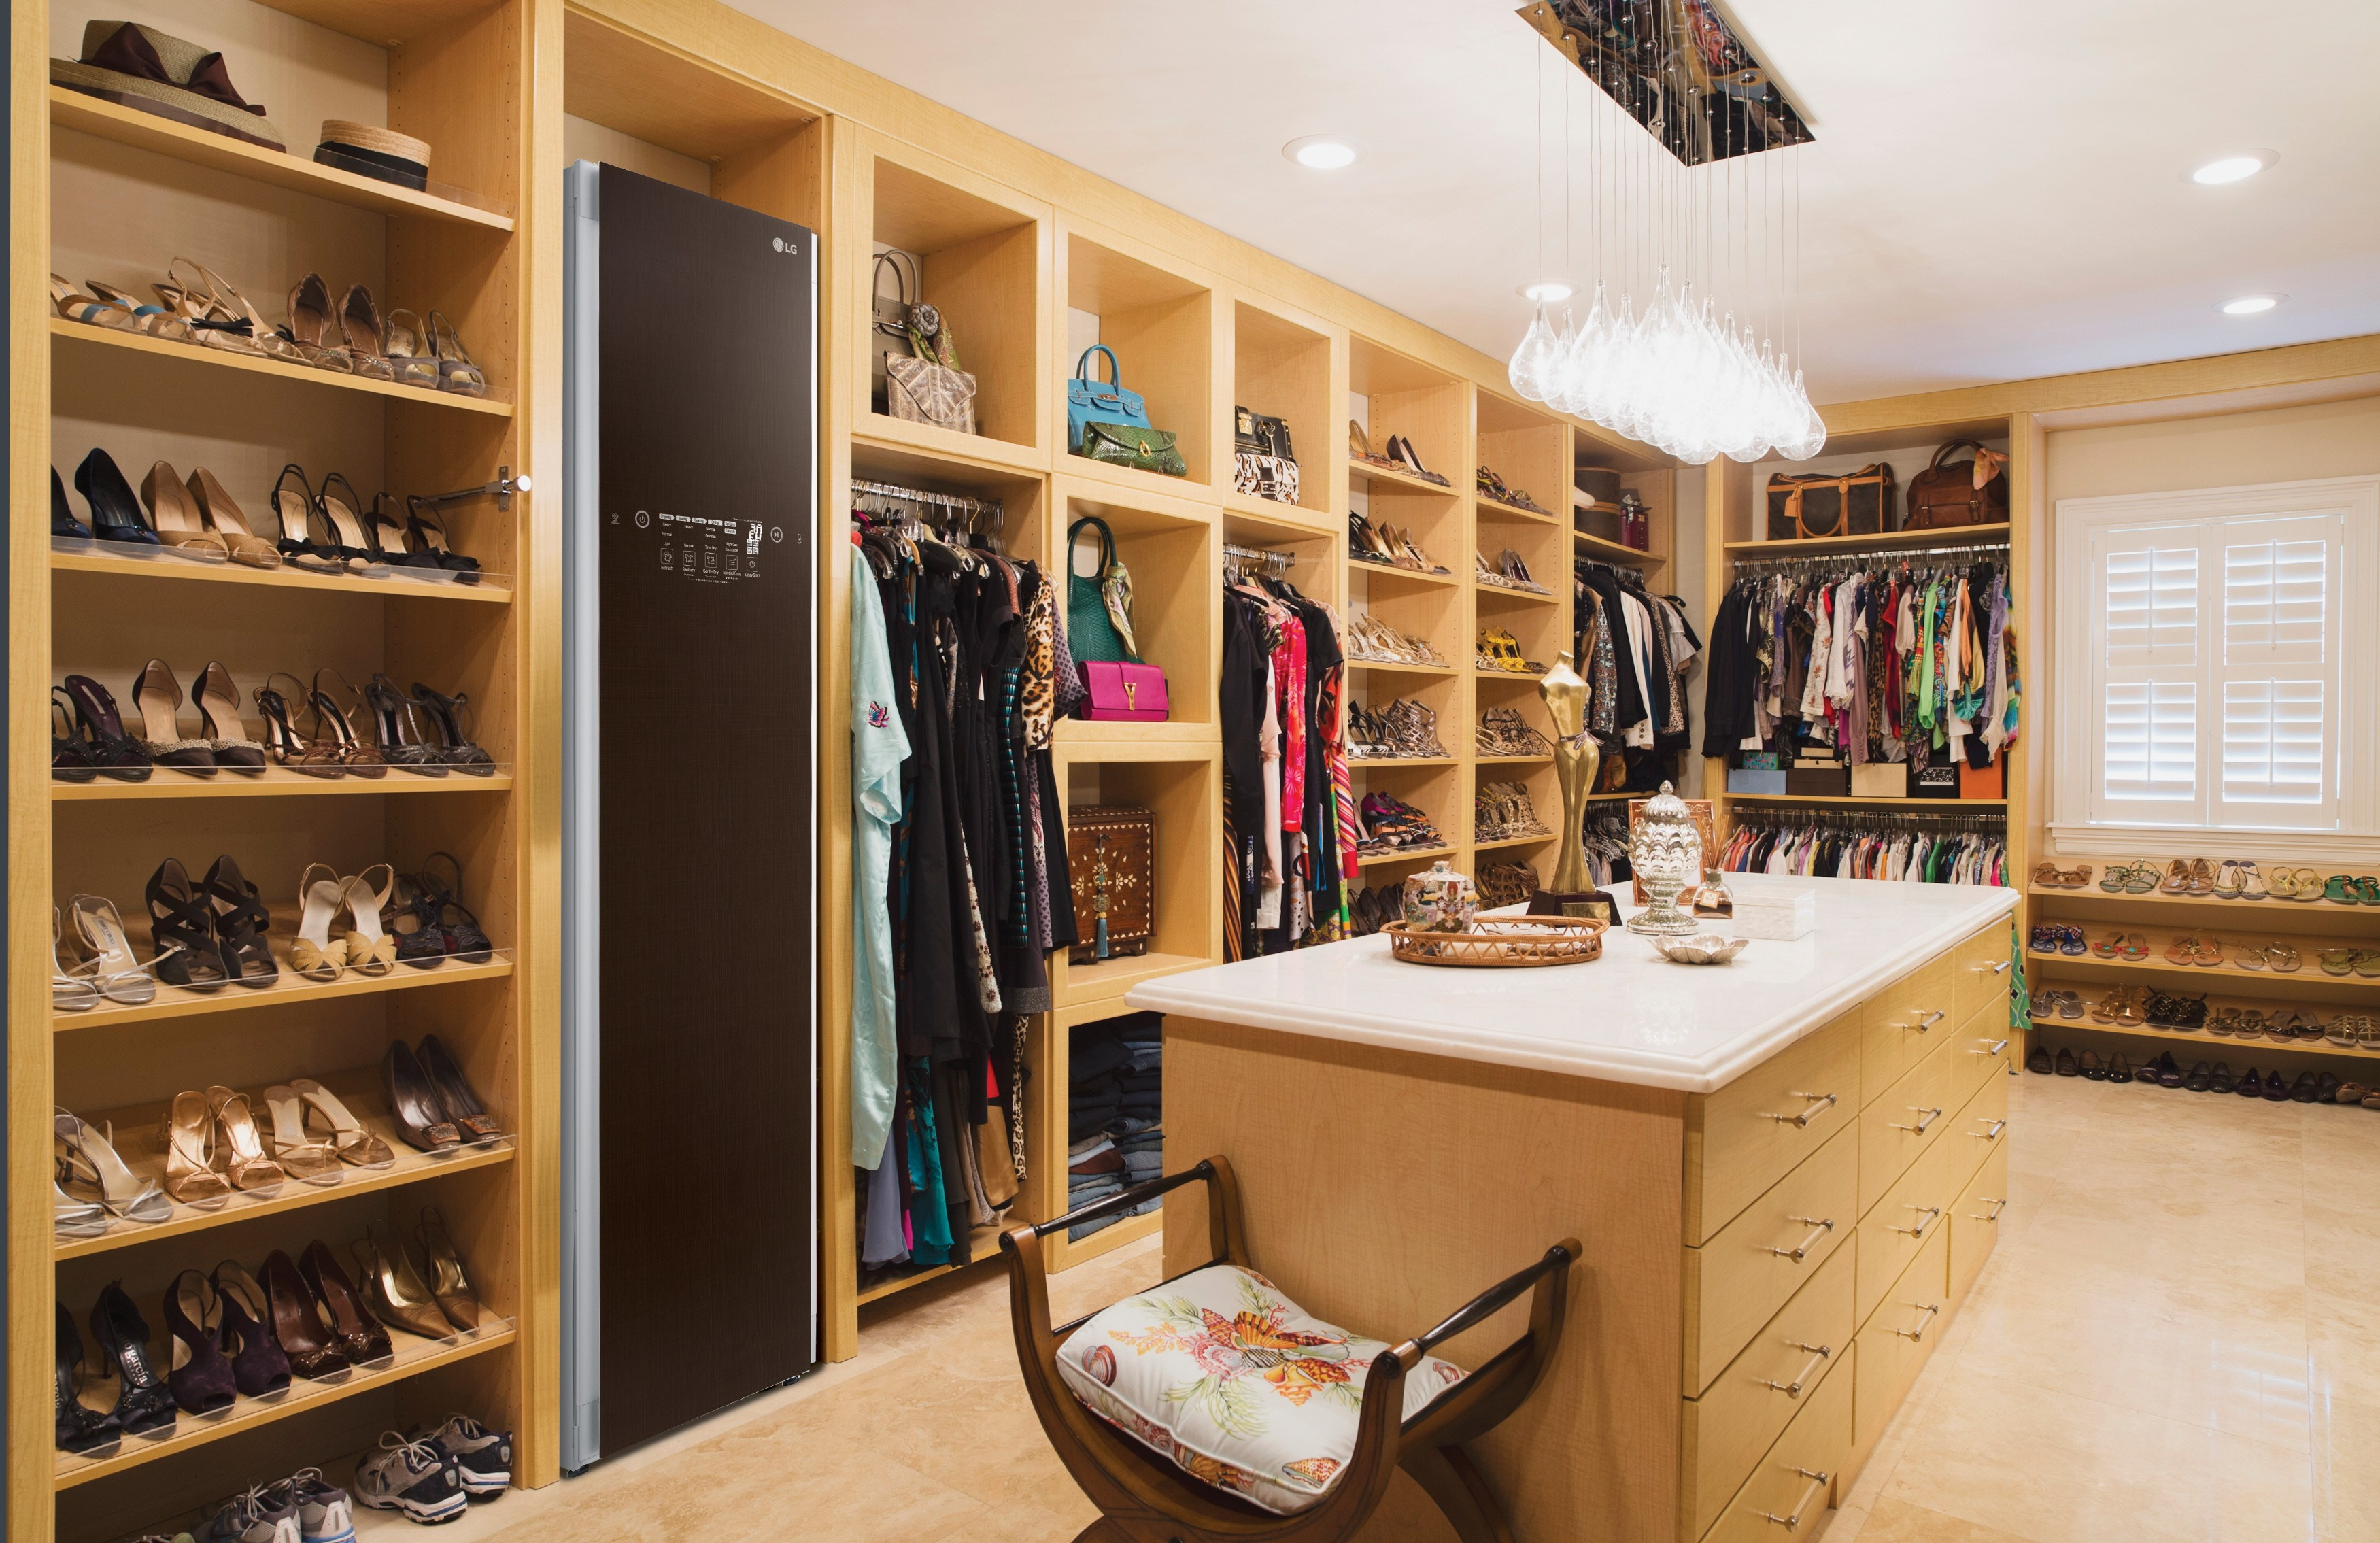 LG Styler fitted into a dress room